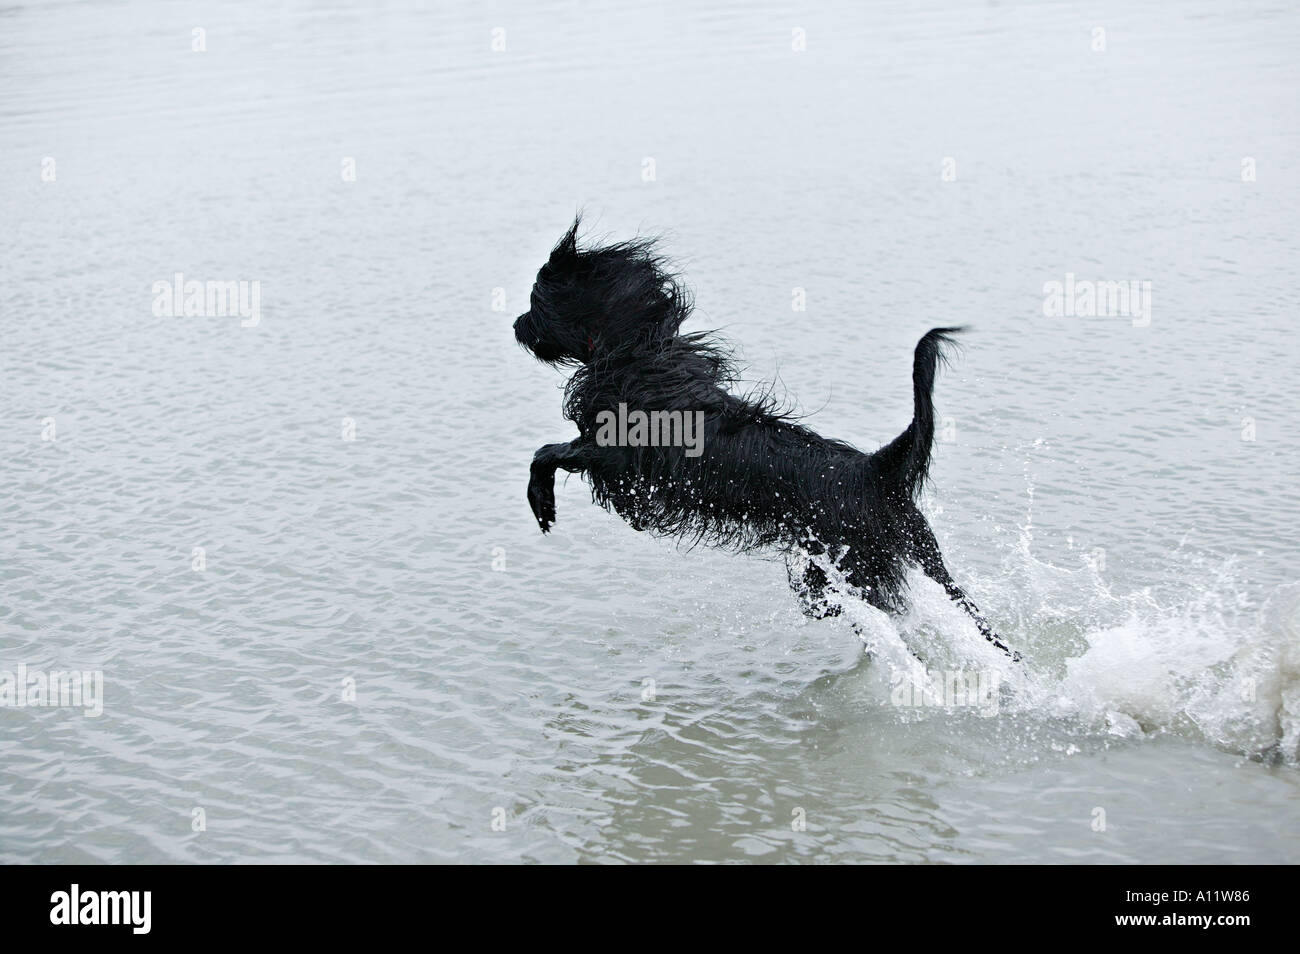 briard black dog leaping out of water while running released Stock Photo